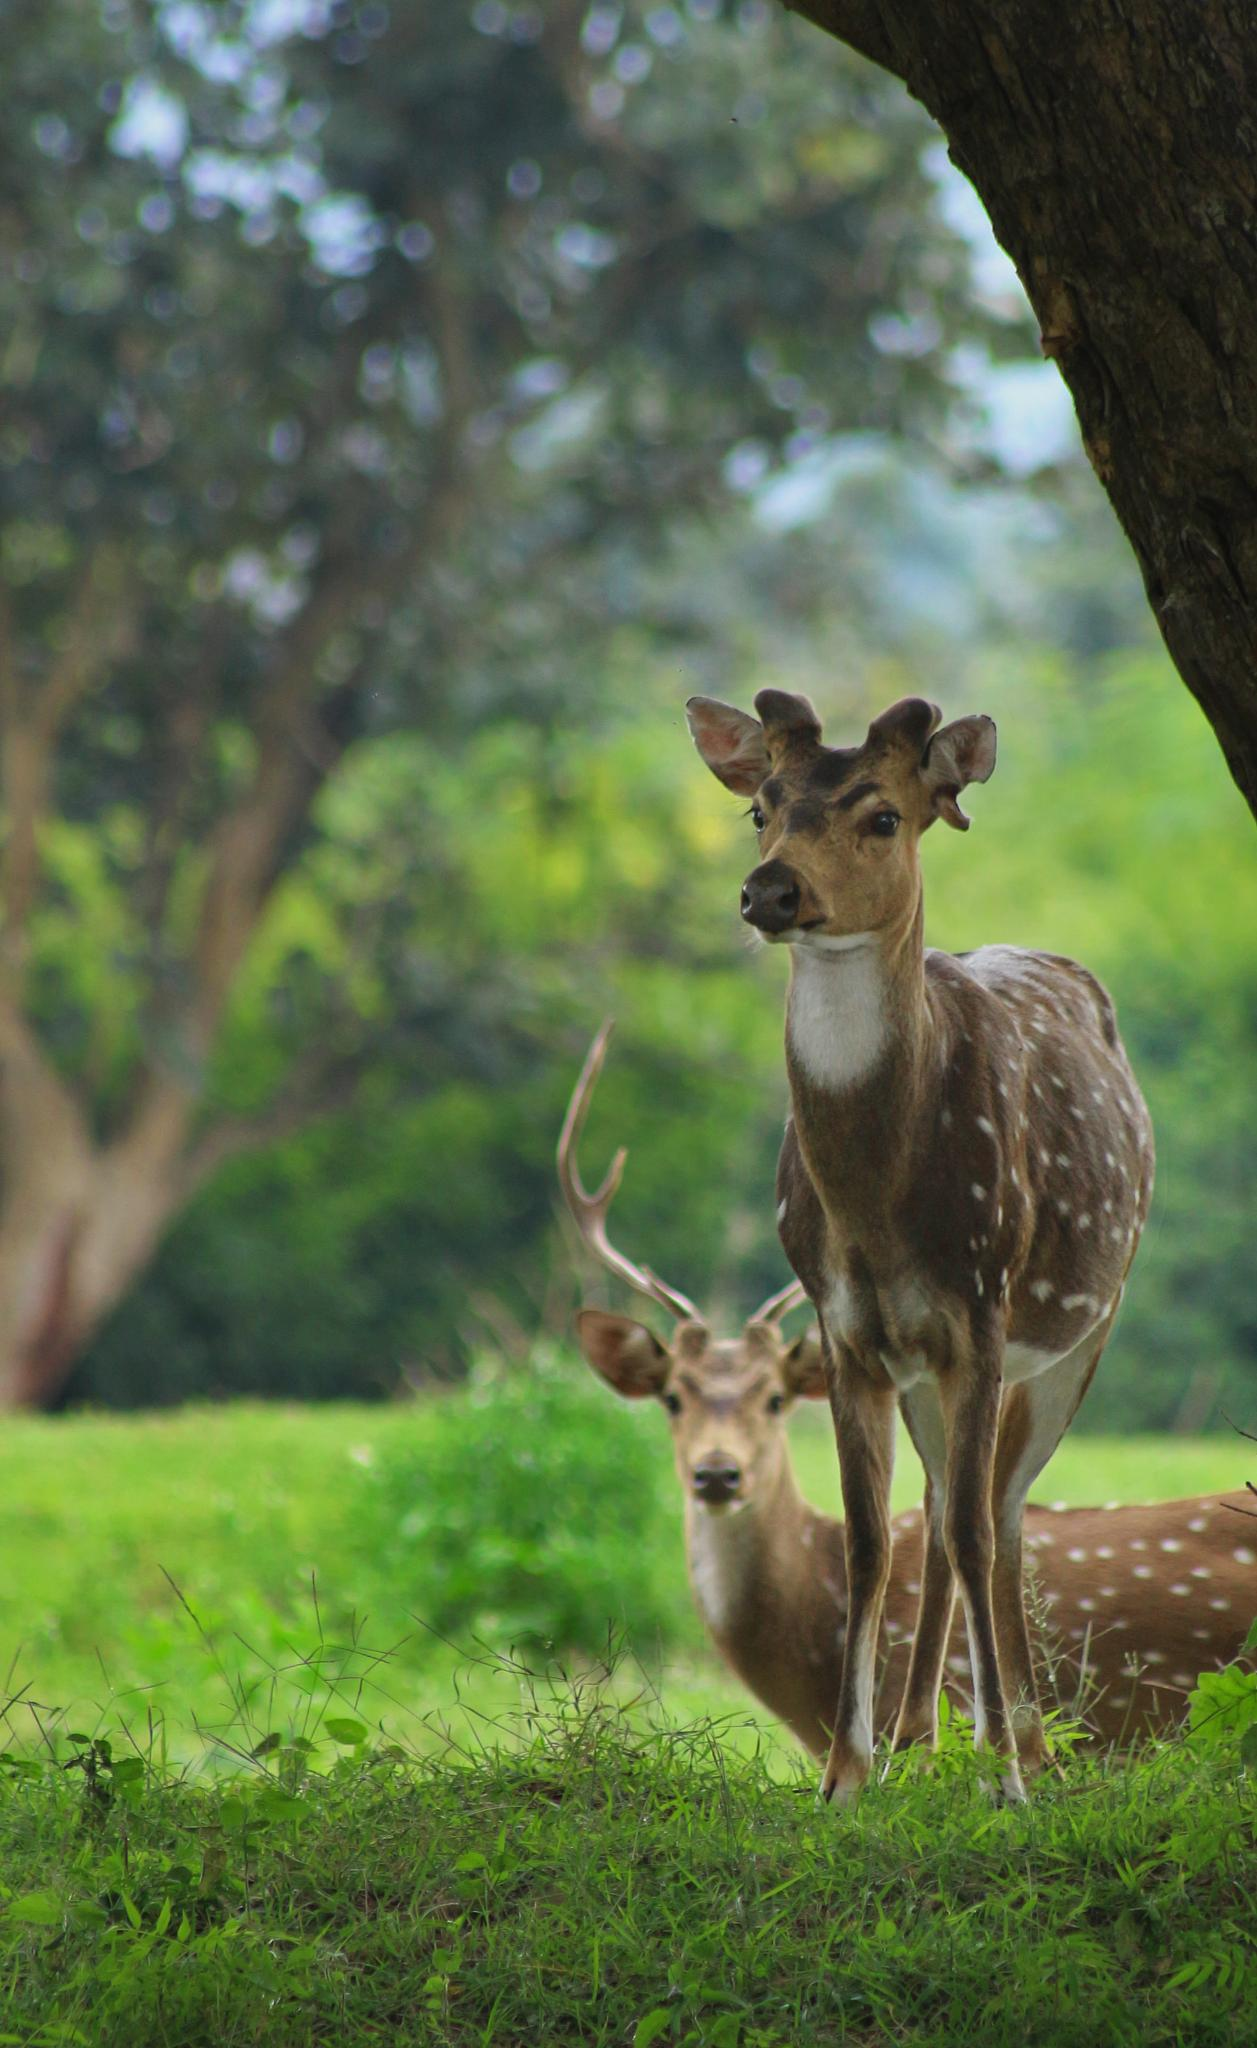 deers pair  under tree by Ramesha.Samarpana